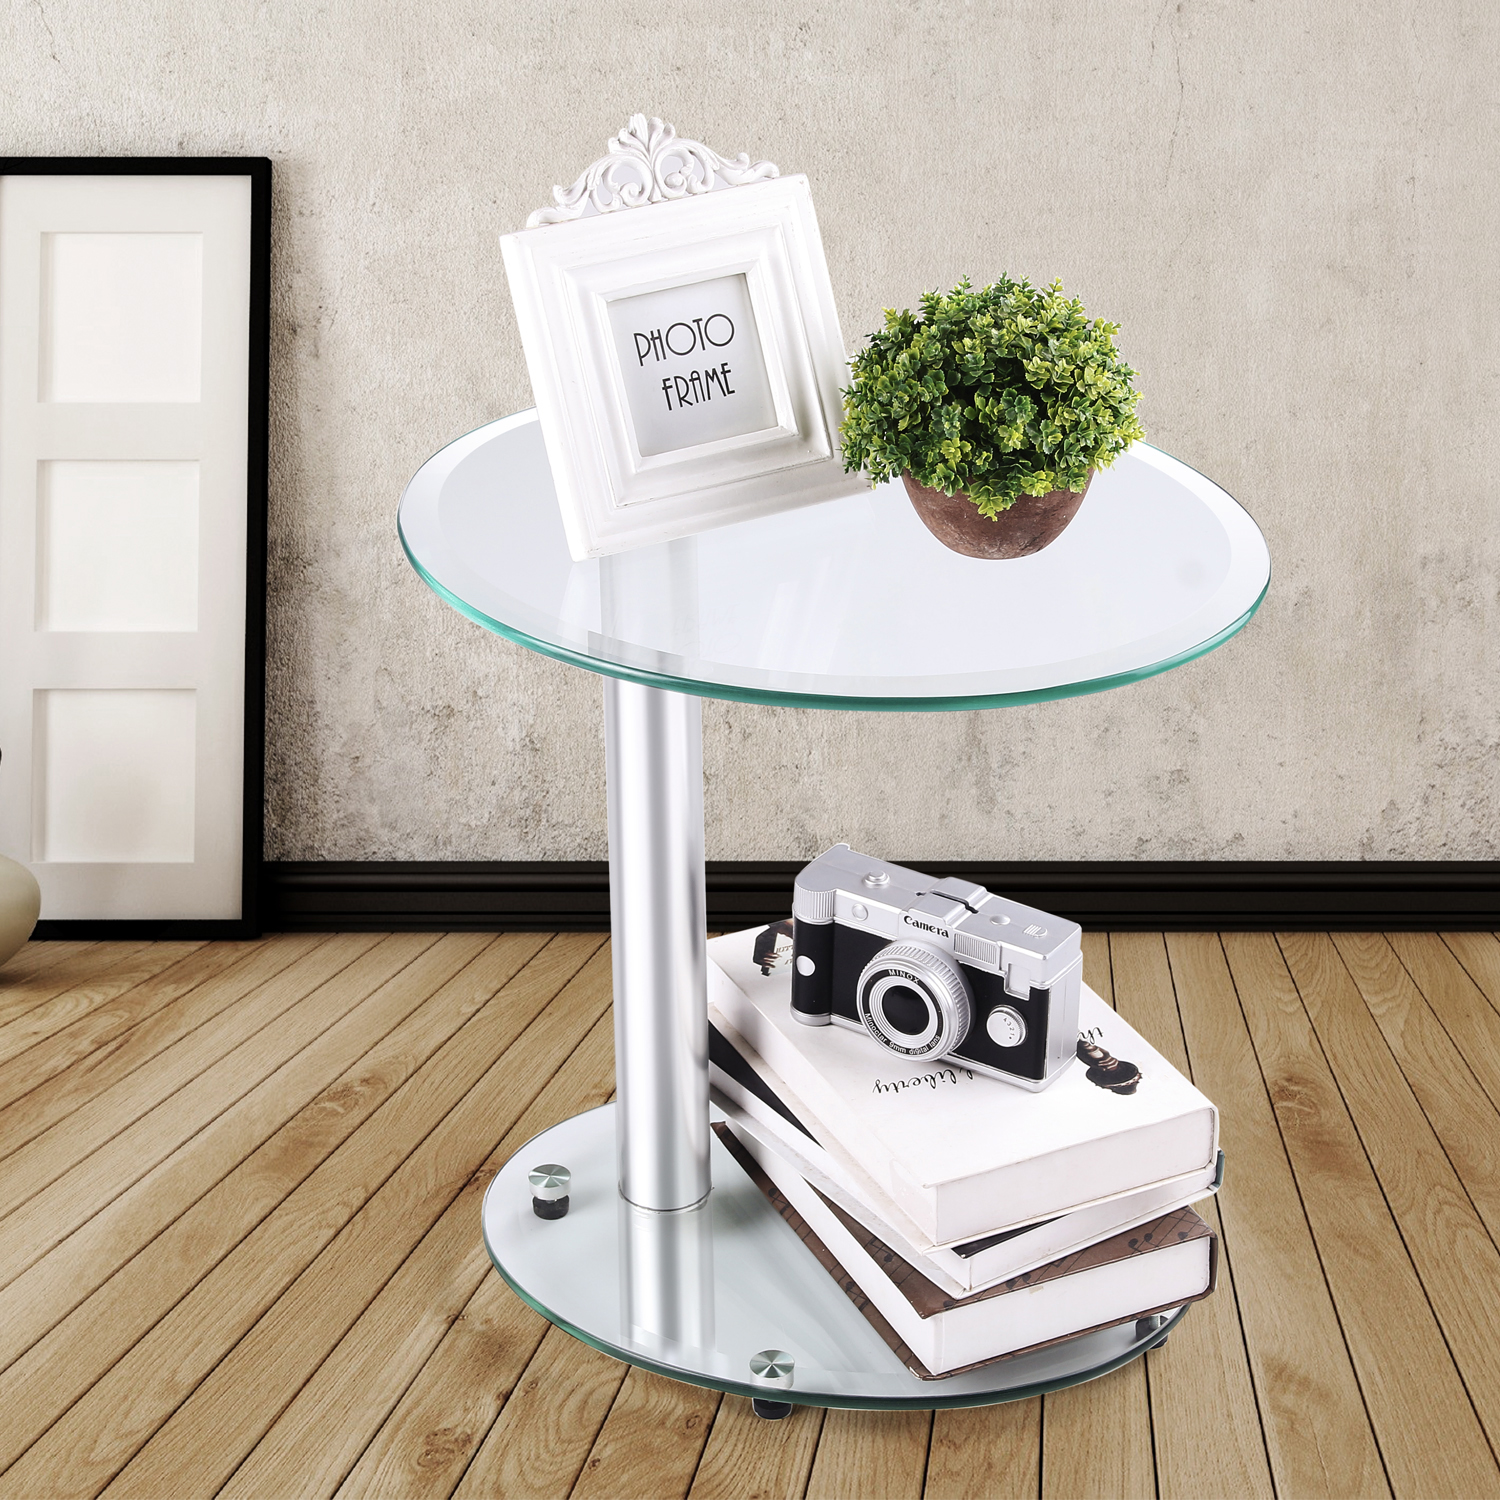 Rfiver Oval Coffee Table Small Side Table End Table, Save Space Corner Table for Bedroom&Living Room, Clear Tempered Glass ET3001